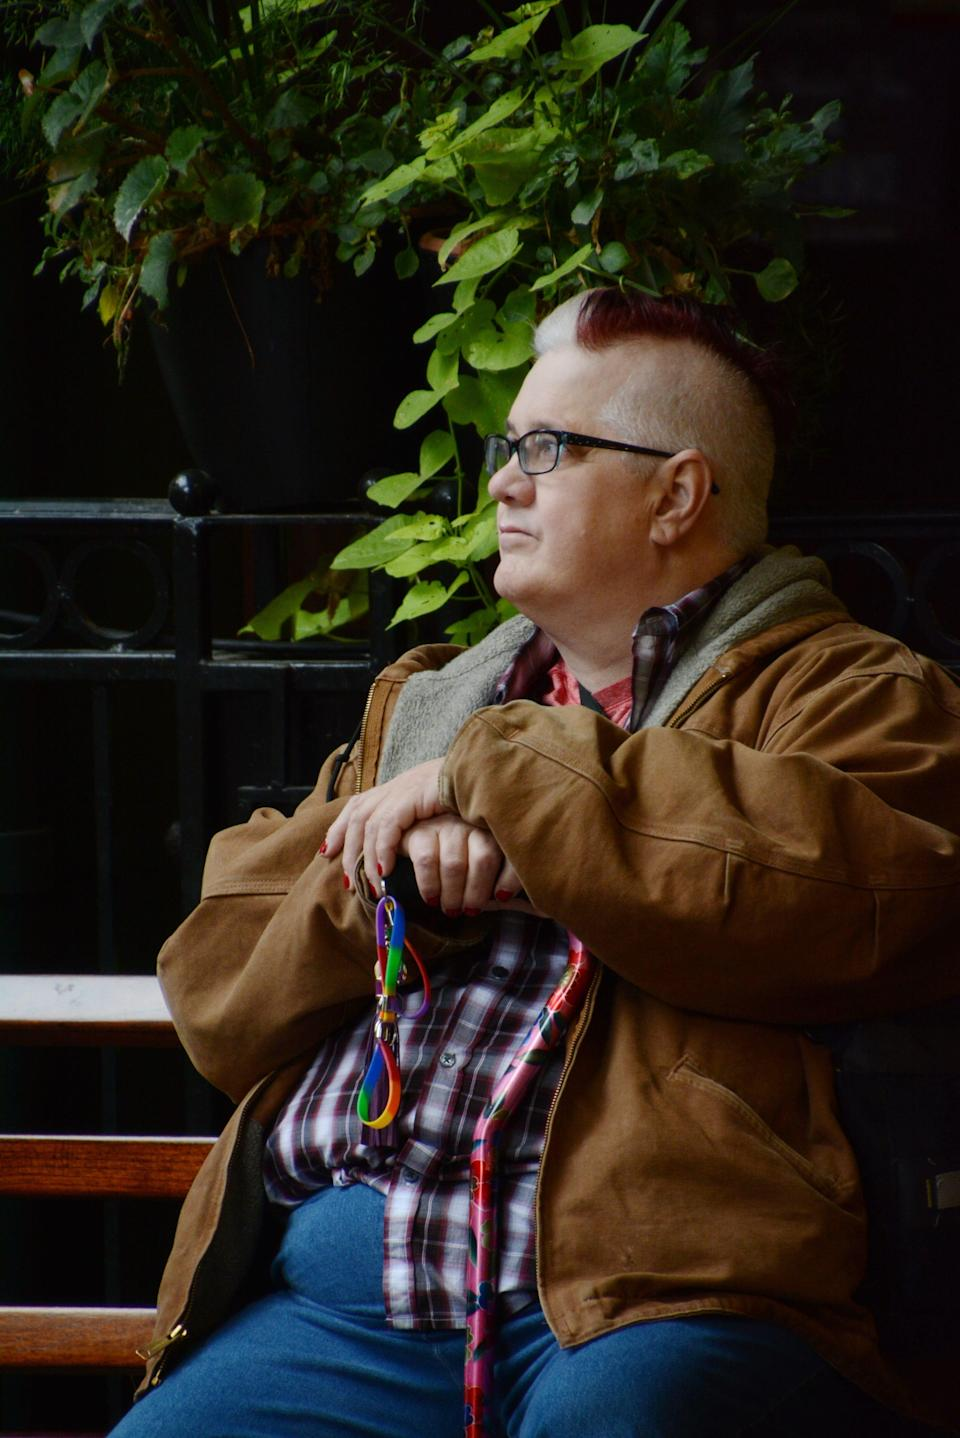 Intersex and non-binary activist Dana Zzyym, 61, sued the State Department for a gender-neutral designation on a passport. The case is currently in the U.S. Court of Appeals for the Tenth Circuit.